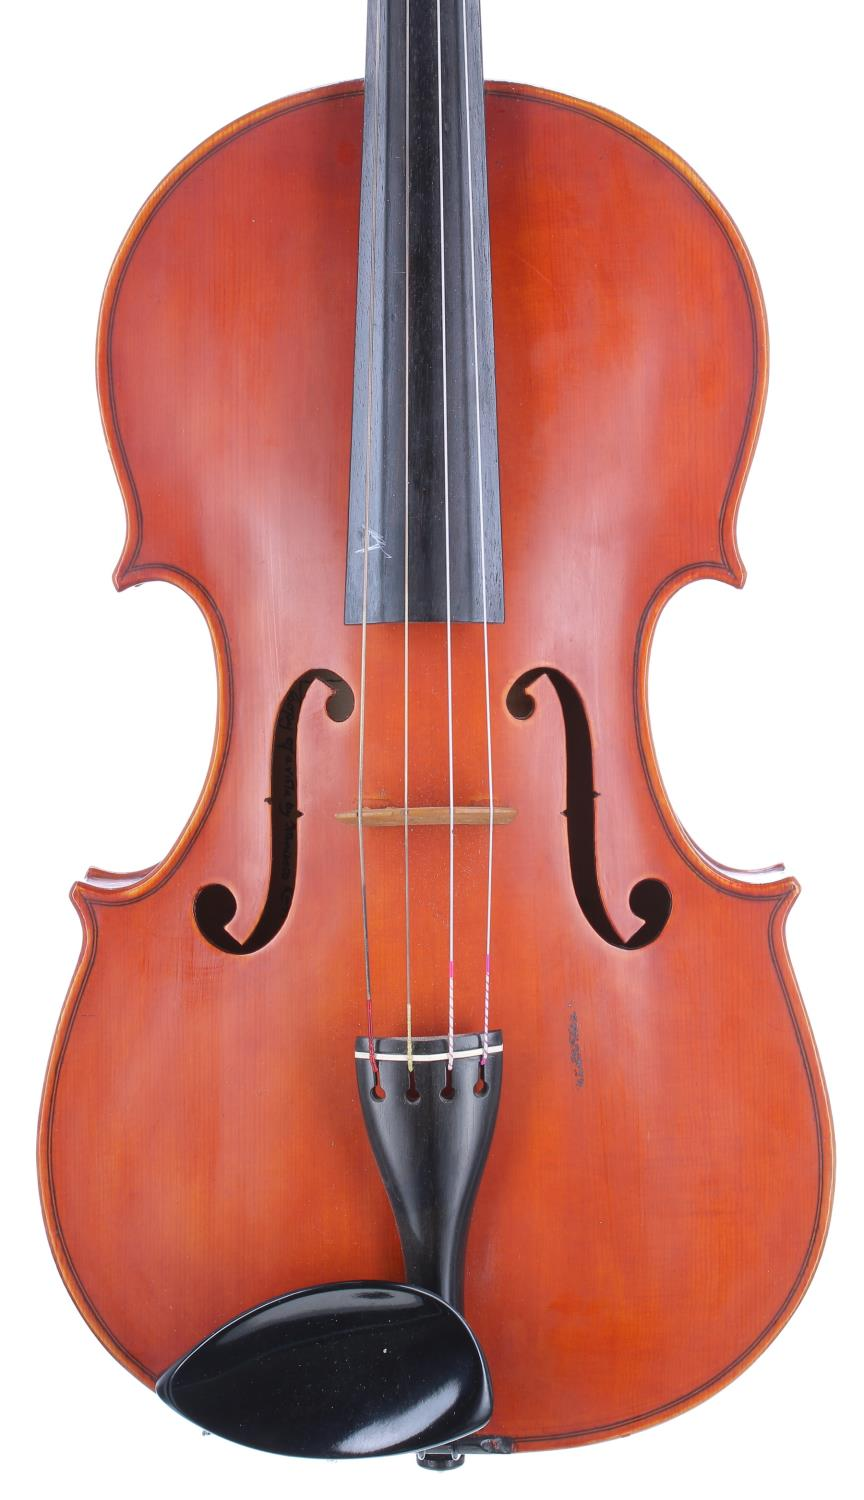 English viola by and labelled Dennis G. Plowright, 22 Murray Road, Northwood, no. 95 (viola no. 59),